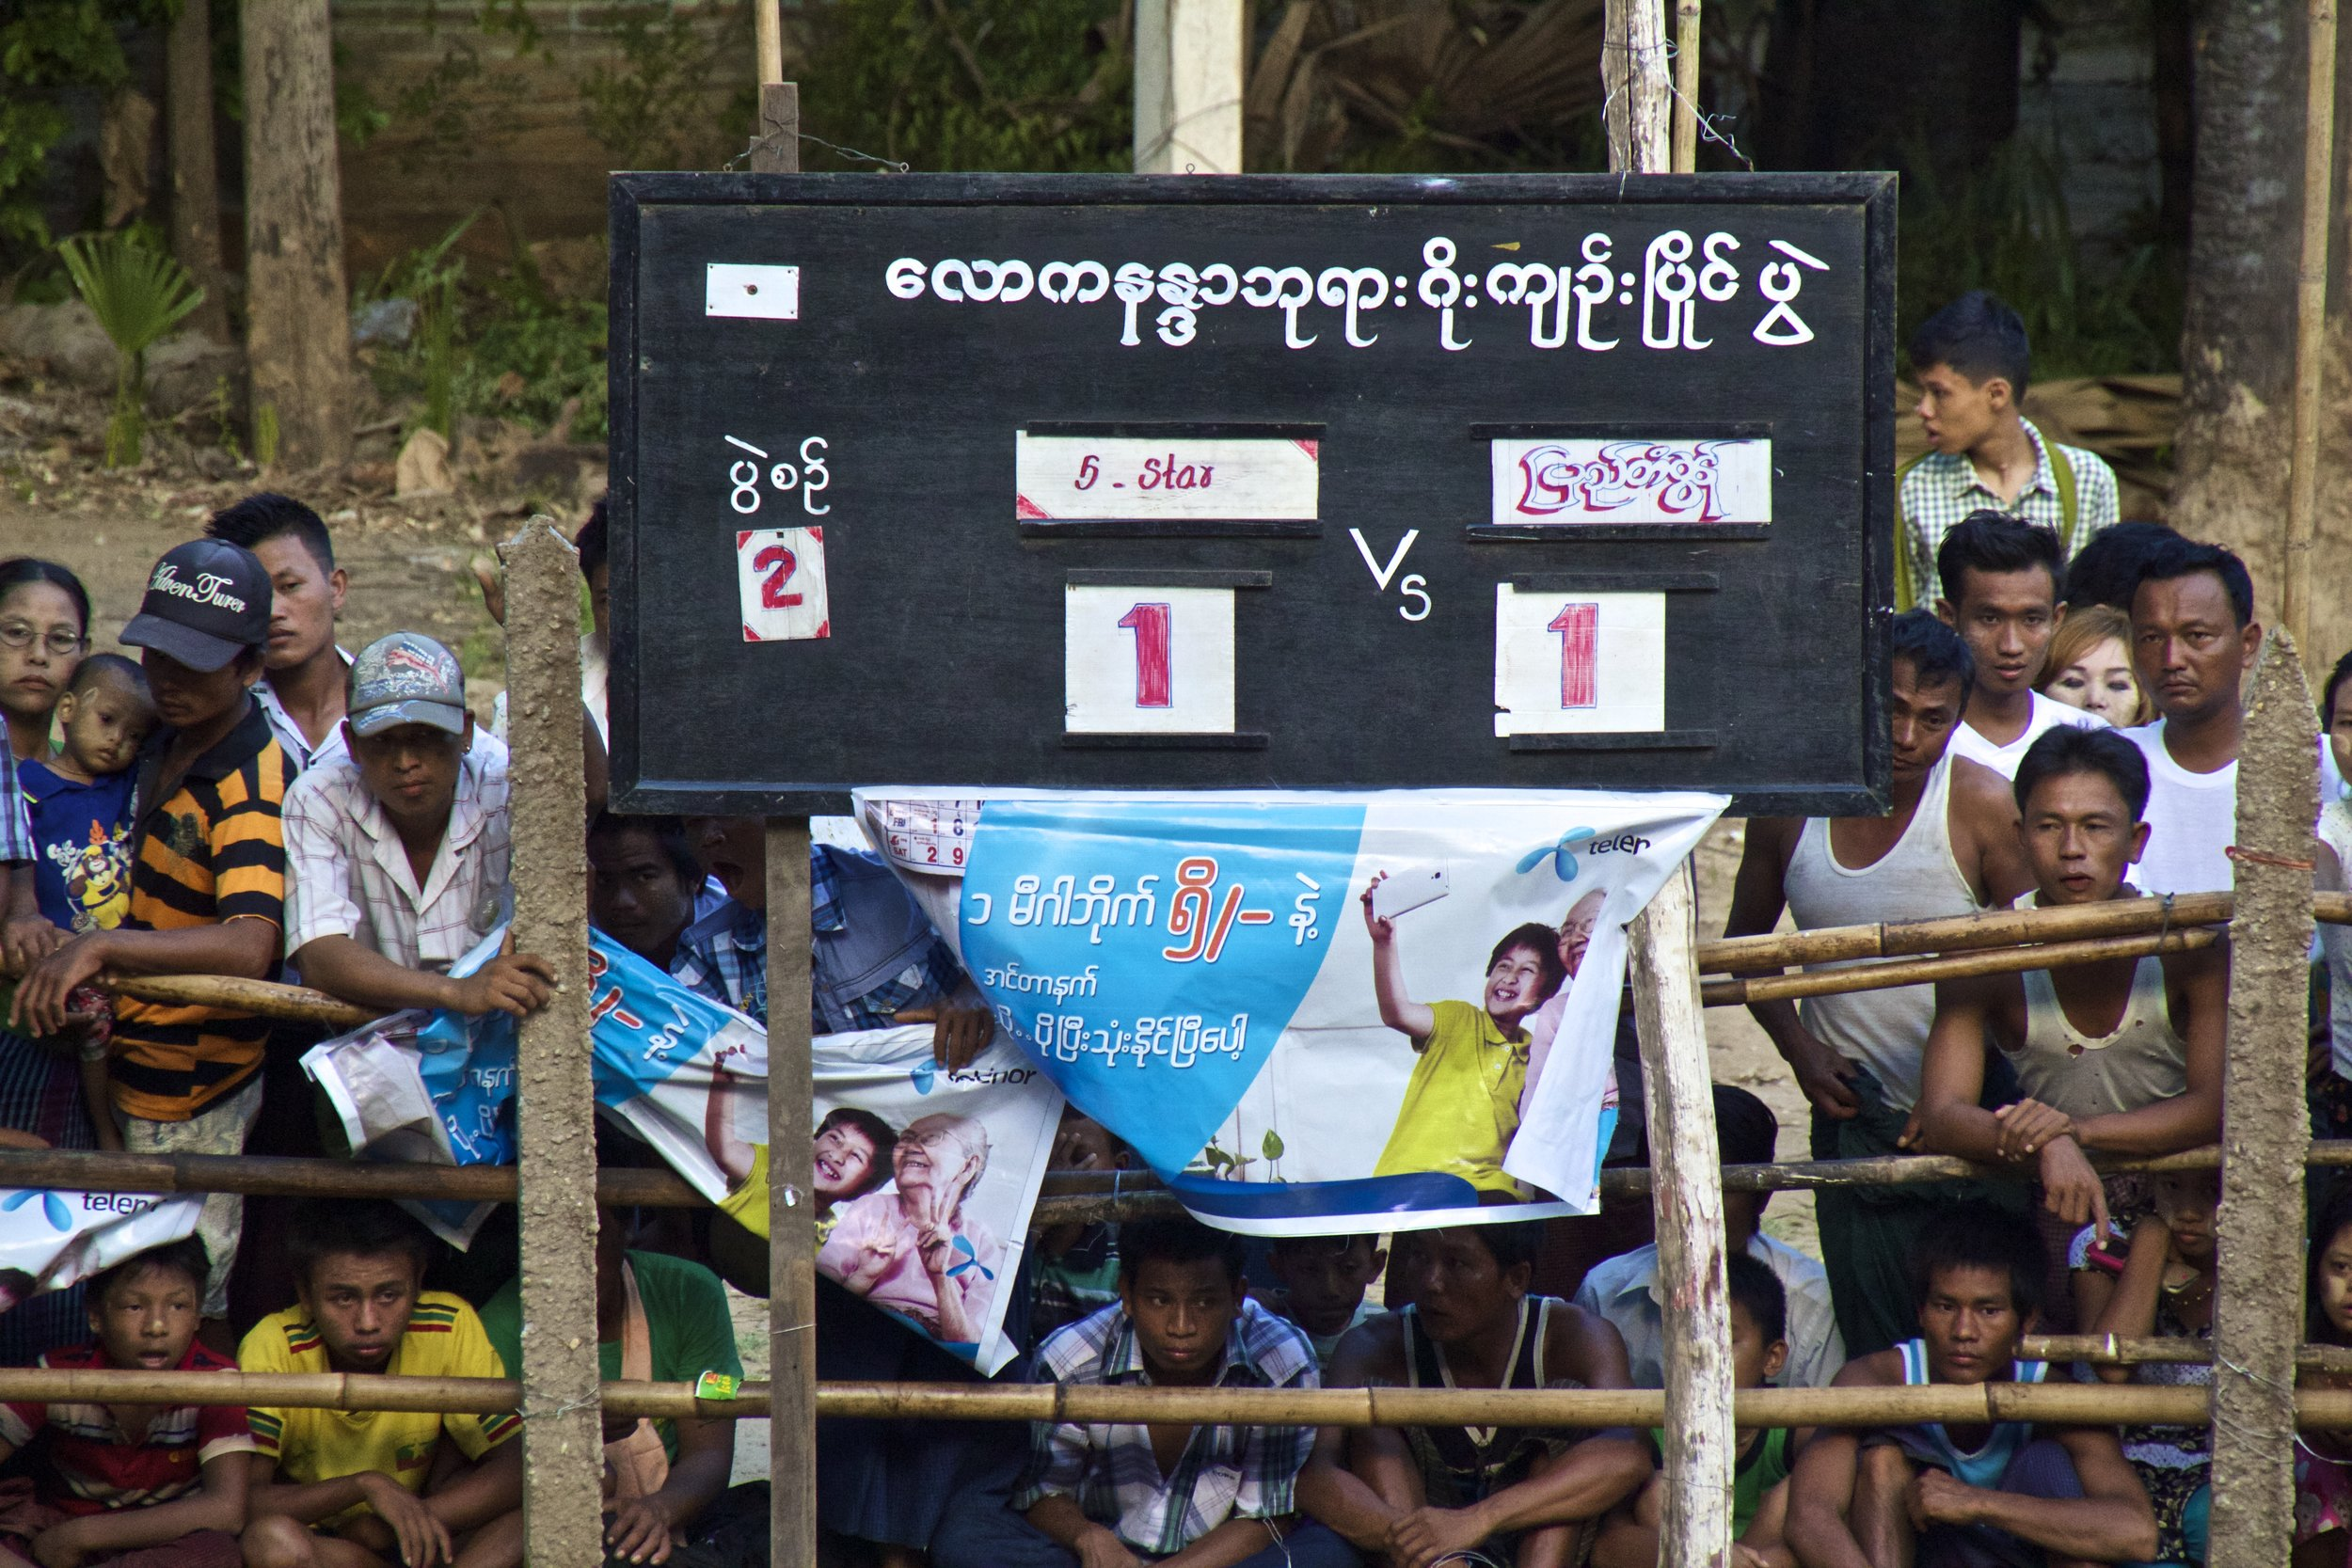 bagan burma football soccer match 6.jpg